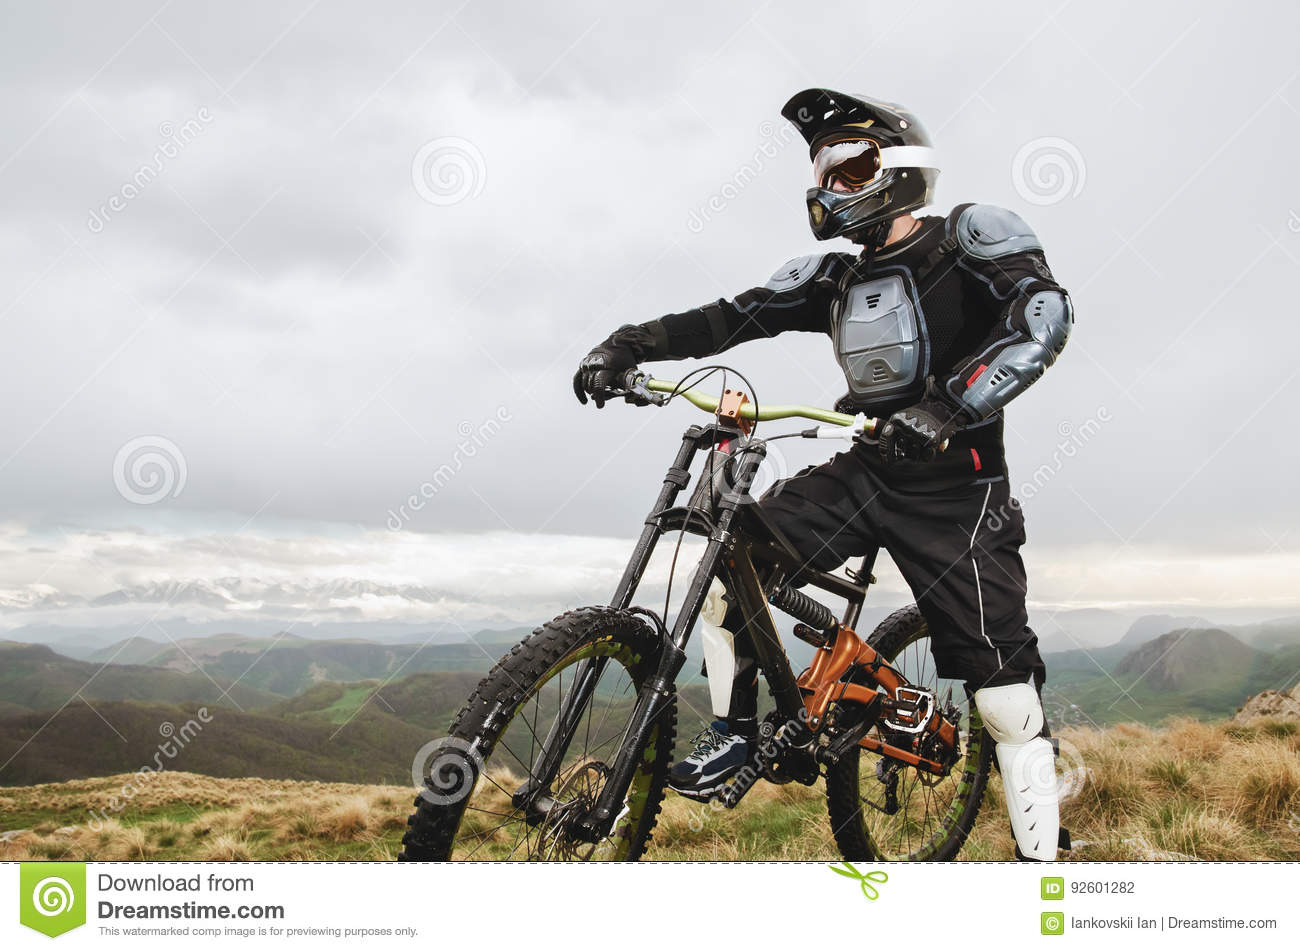 The Rider In The Full Face Helmet And Full Protective Equipment On